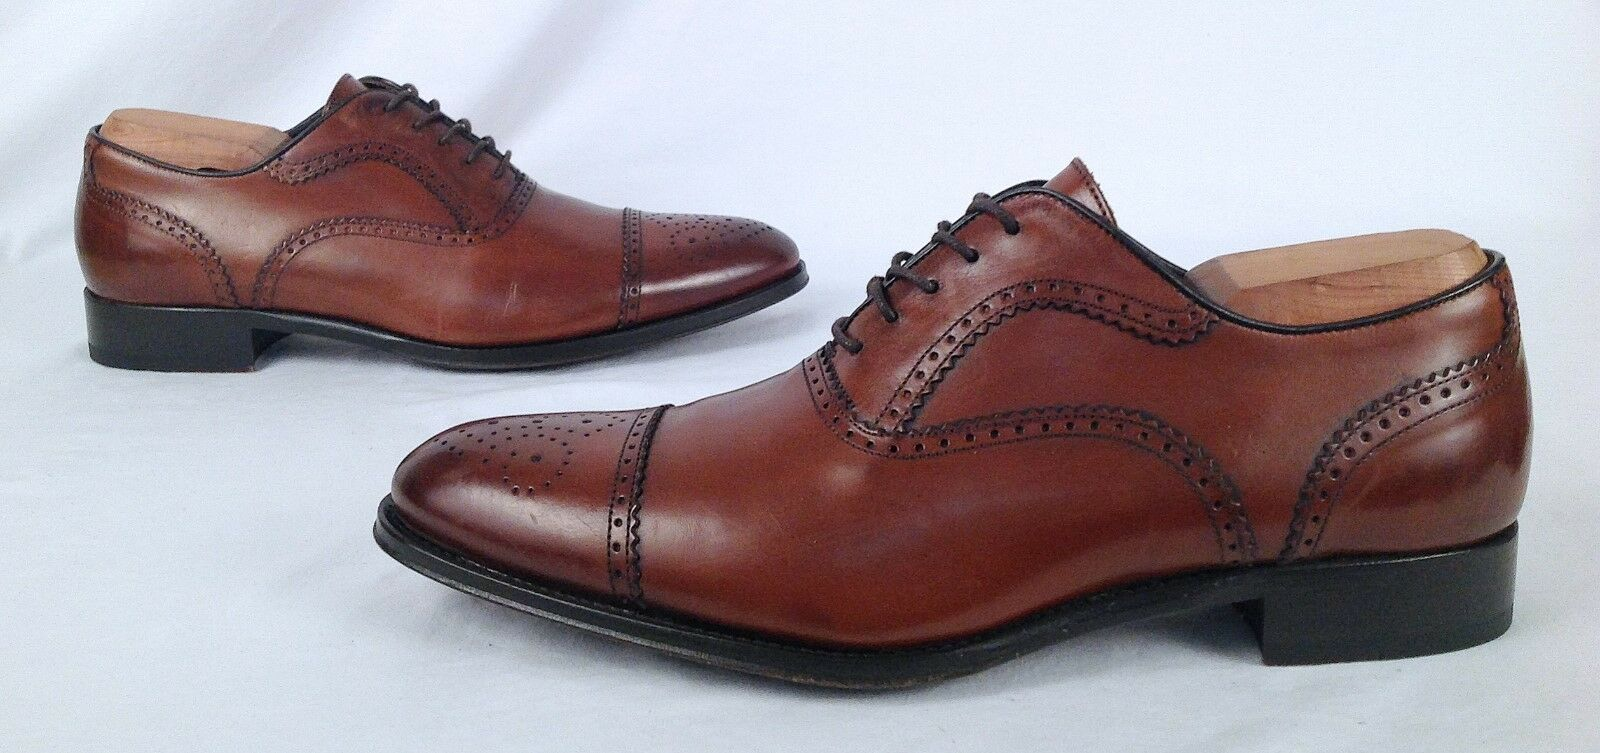 NEW   To Boot New York 'Capote'  Perforat Oxford- Brown- Size 9.5 M-  398